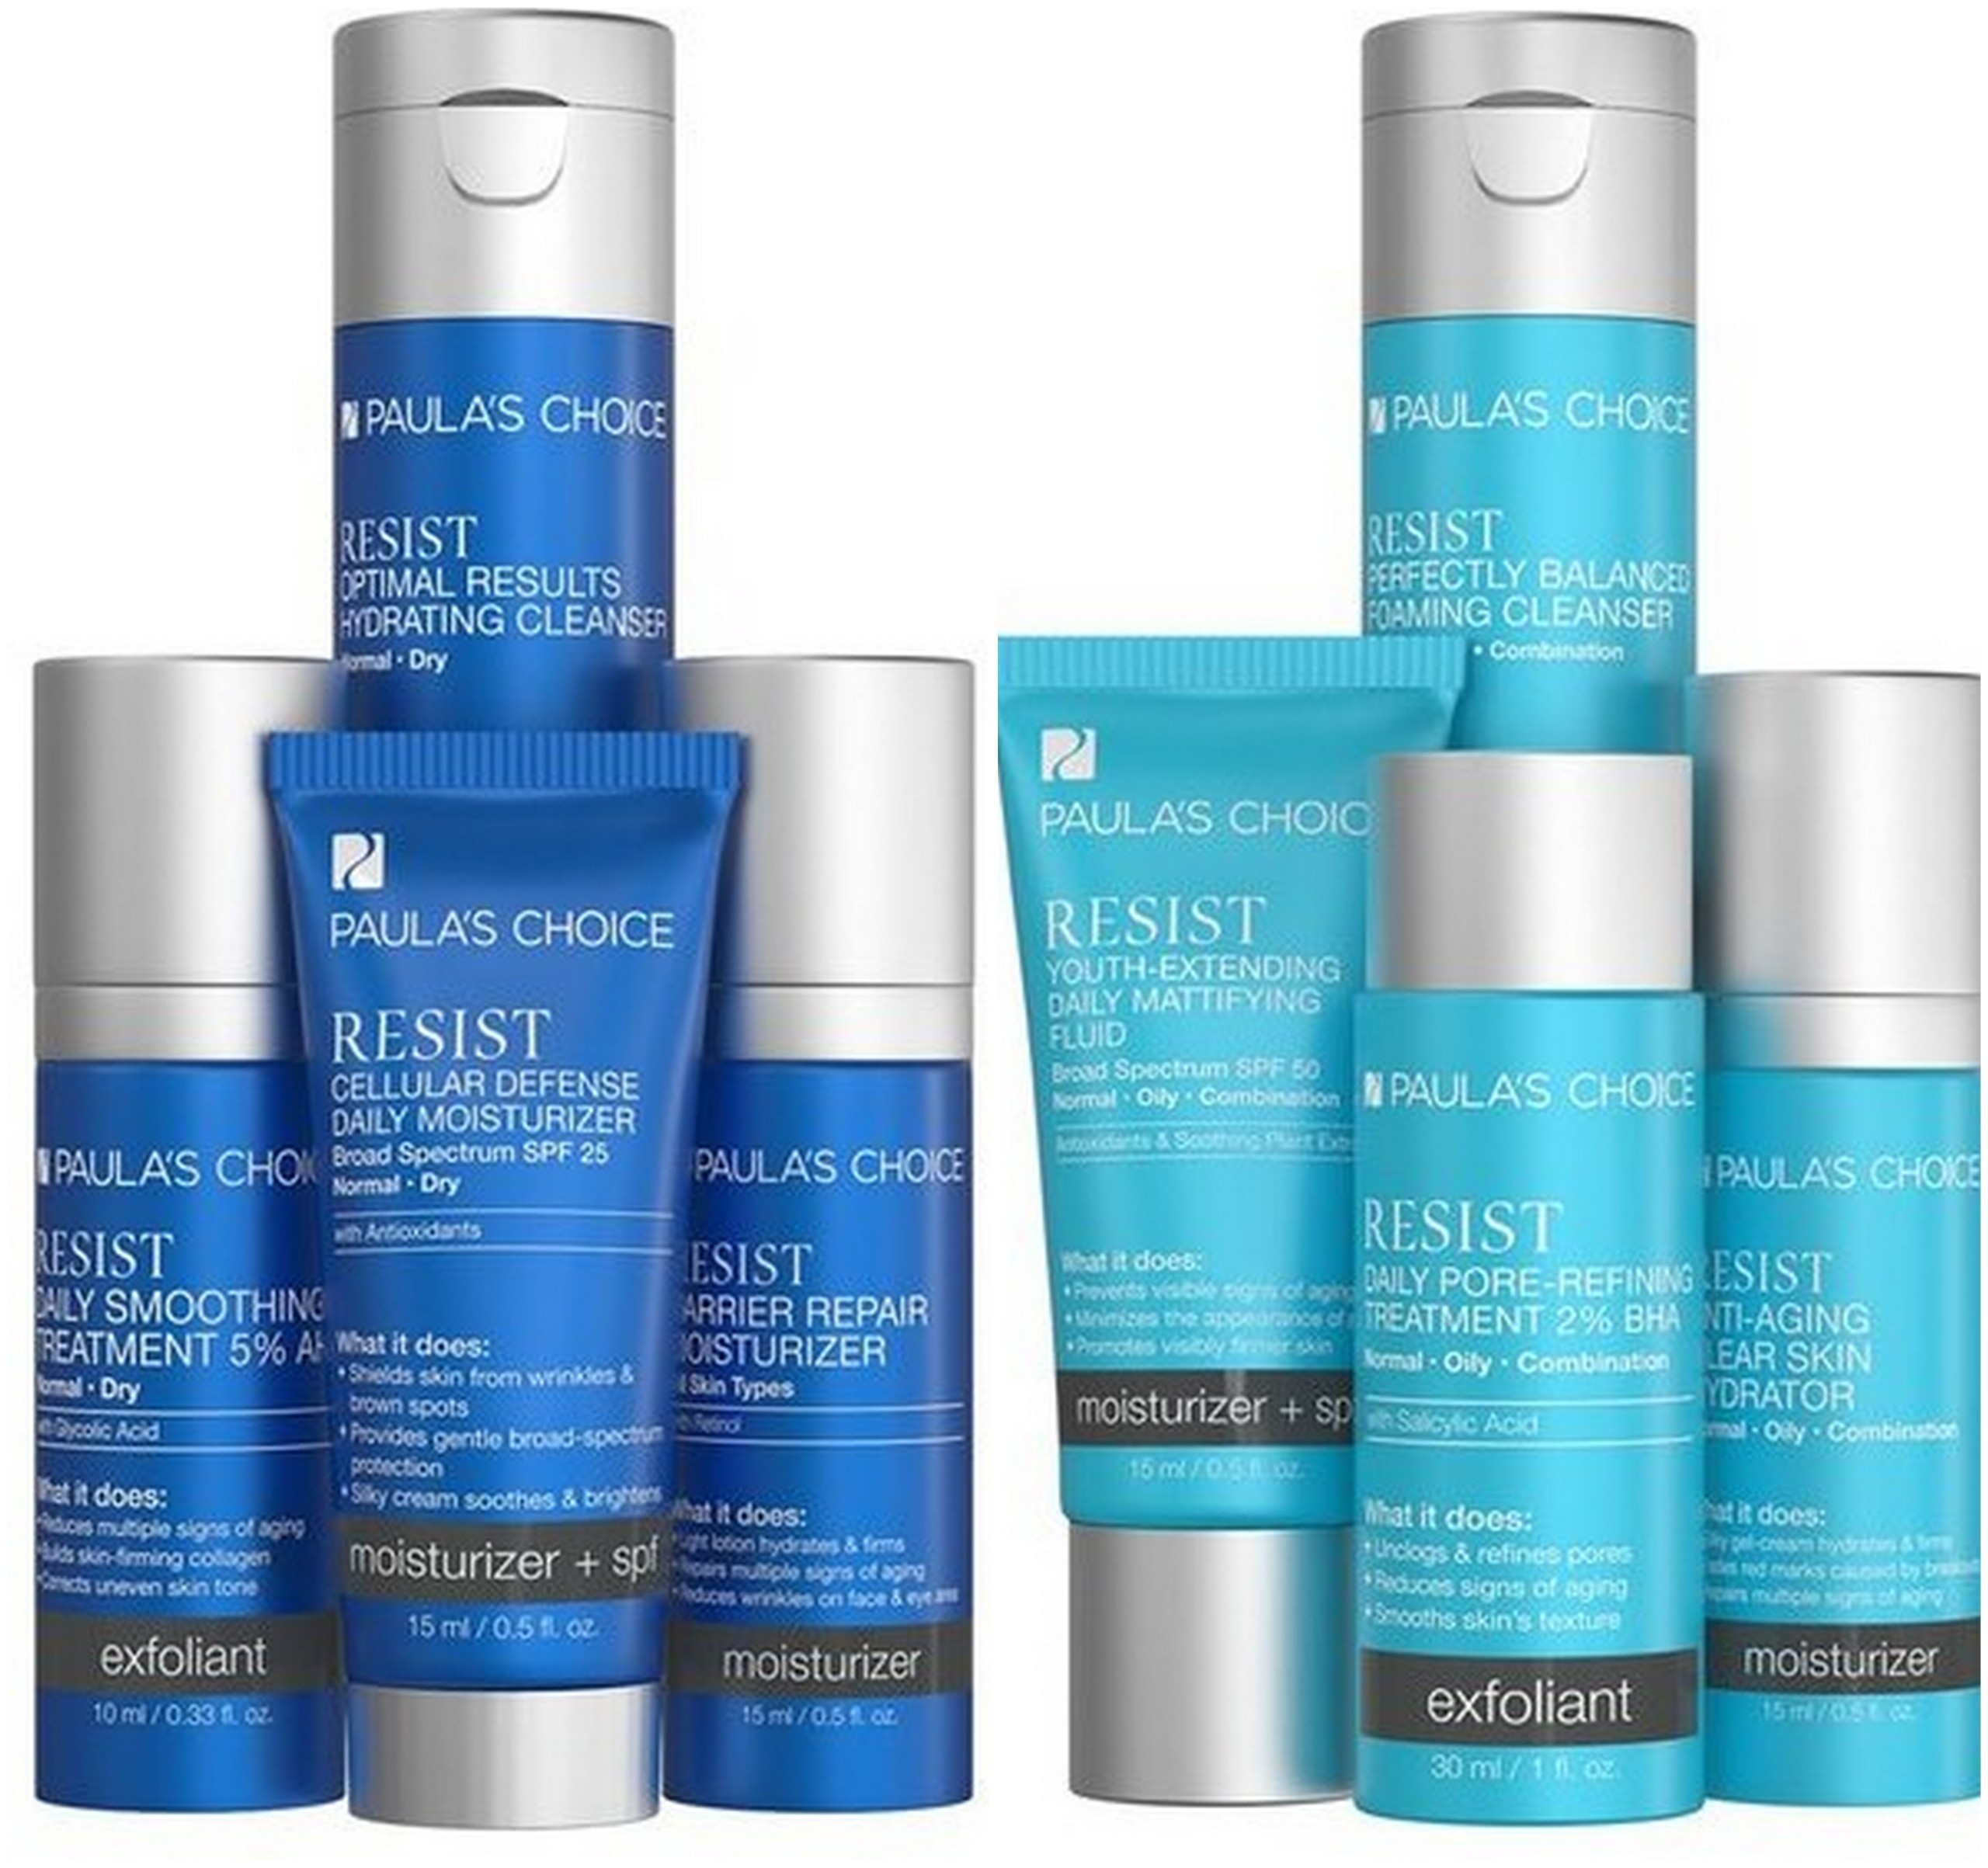 Paula's Choice Skincare RESIST Normal To Dry and Normal To Oily Trial Kits